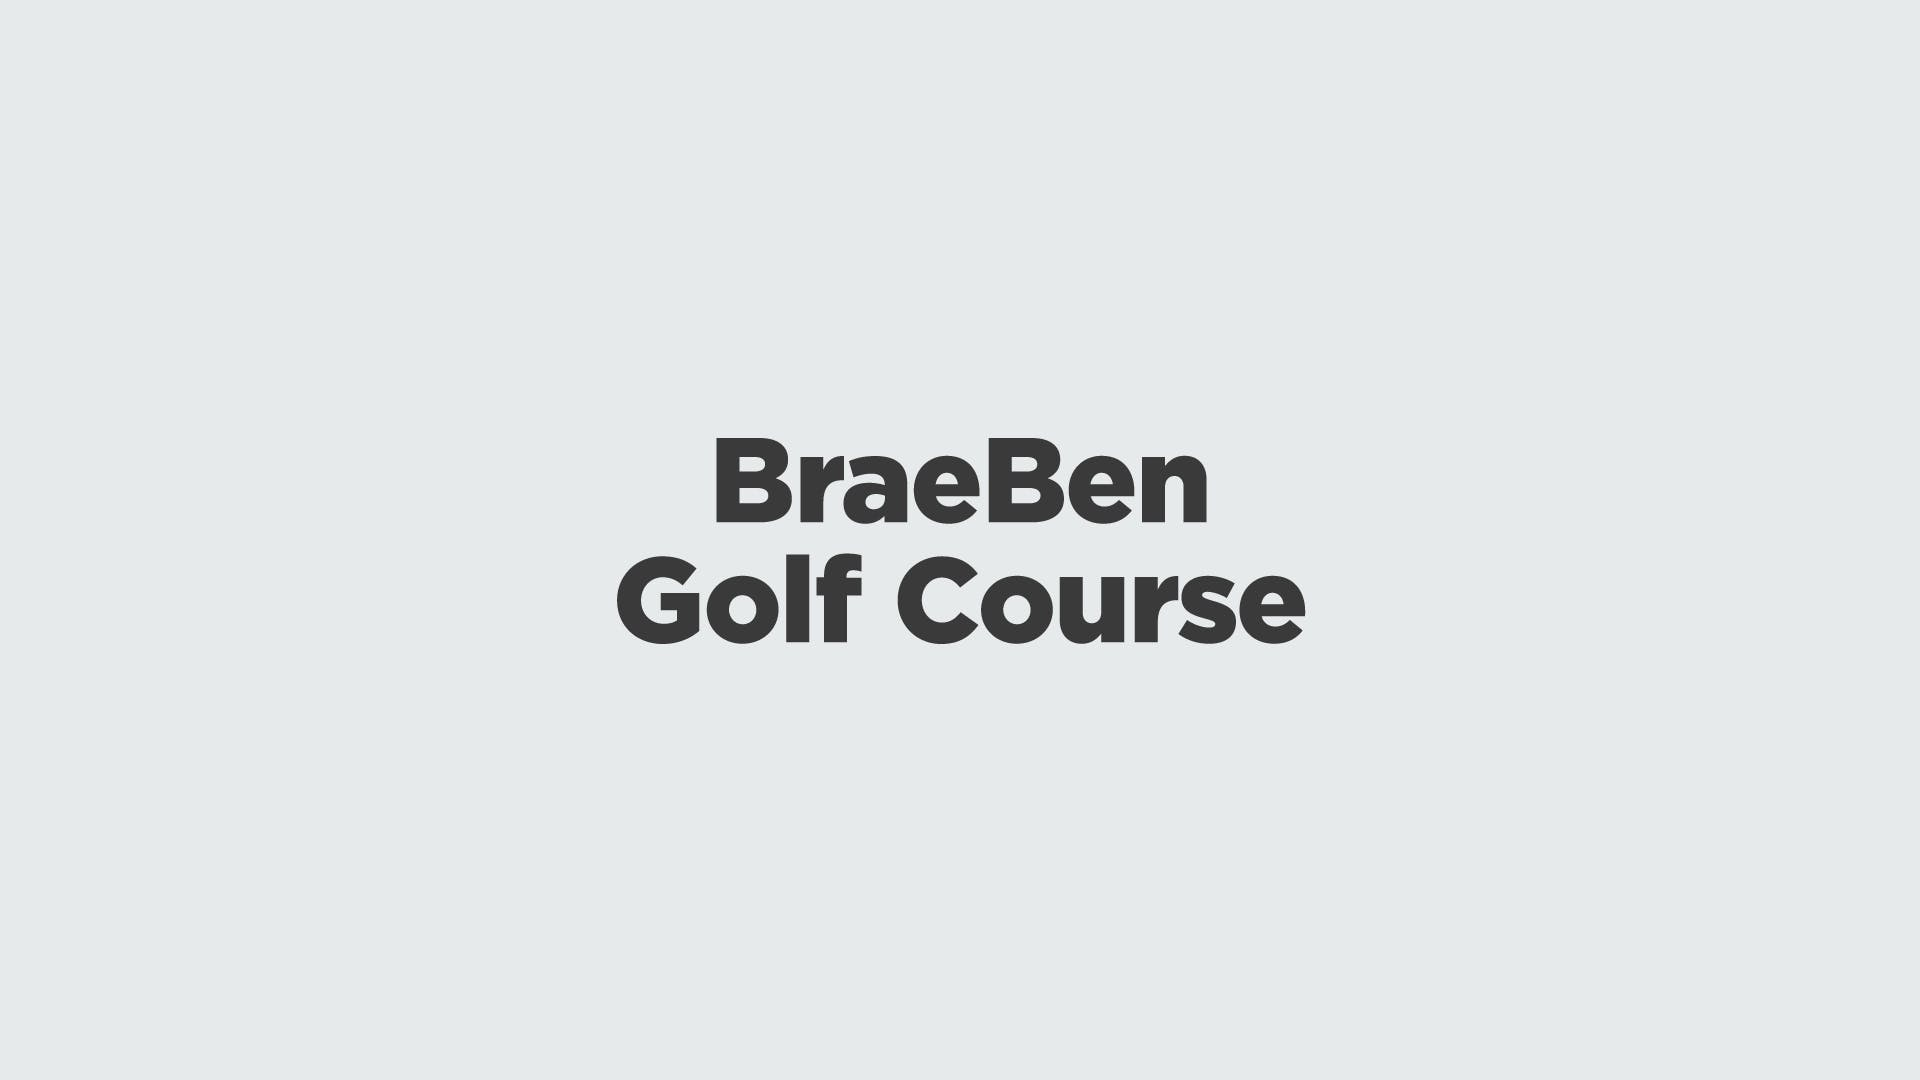 Brae Ben Golf Course